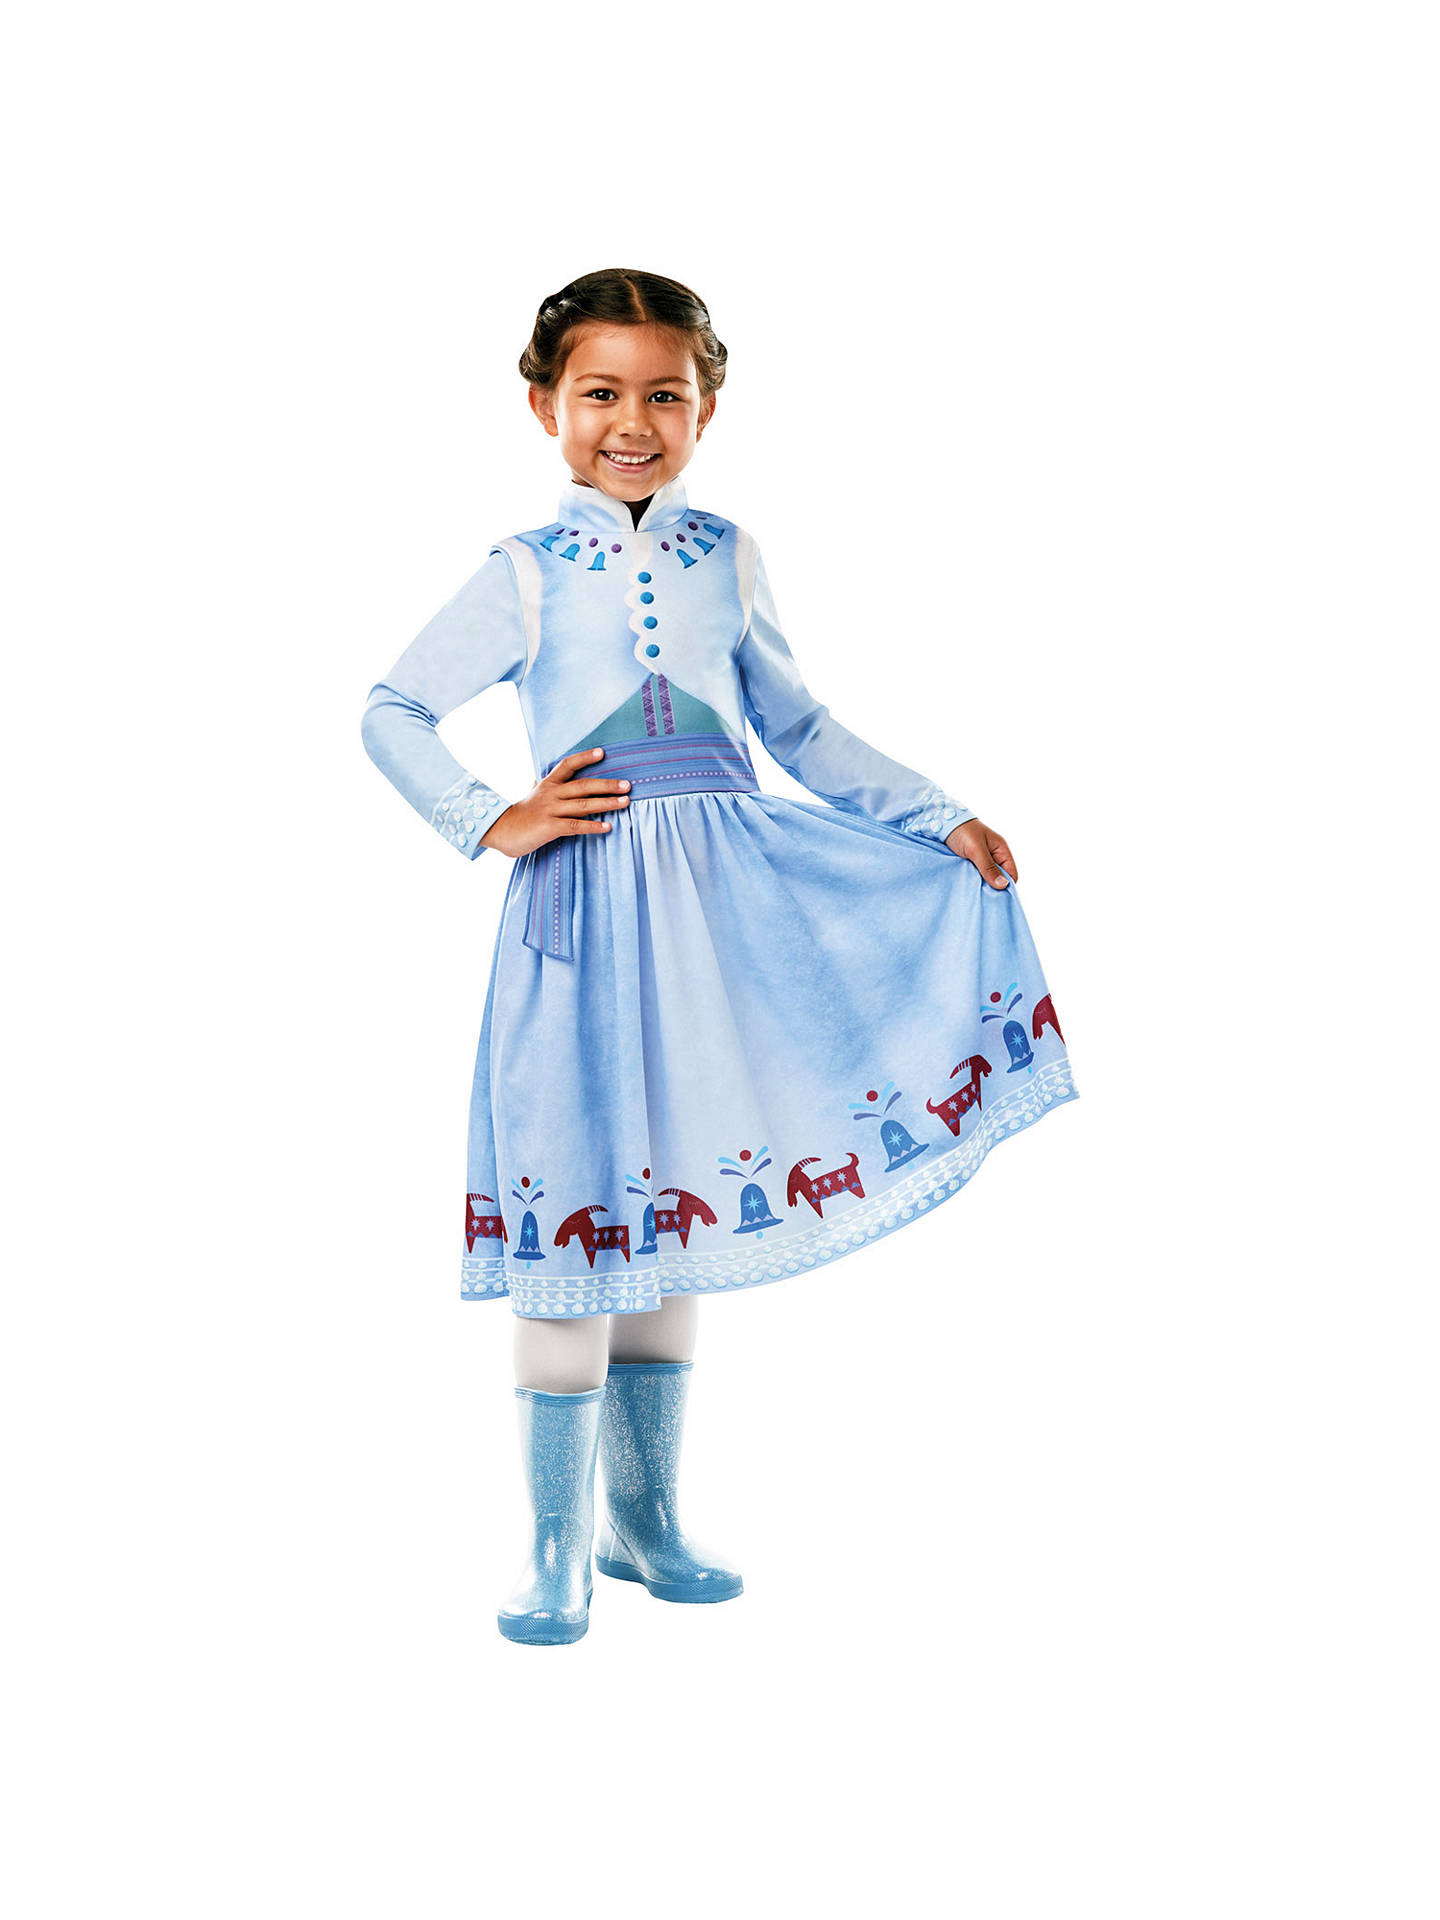 Disney Princess Olaf S Frozen Adventure Anna Costume At